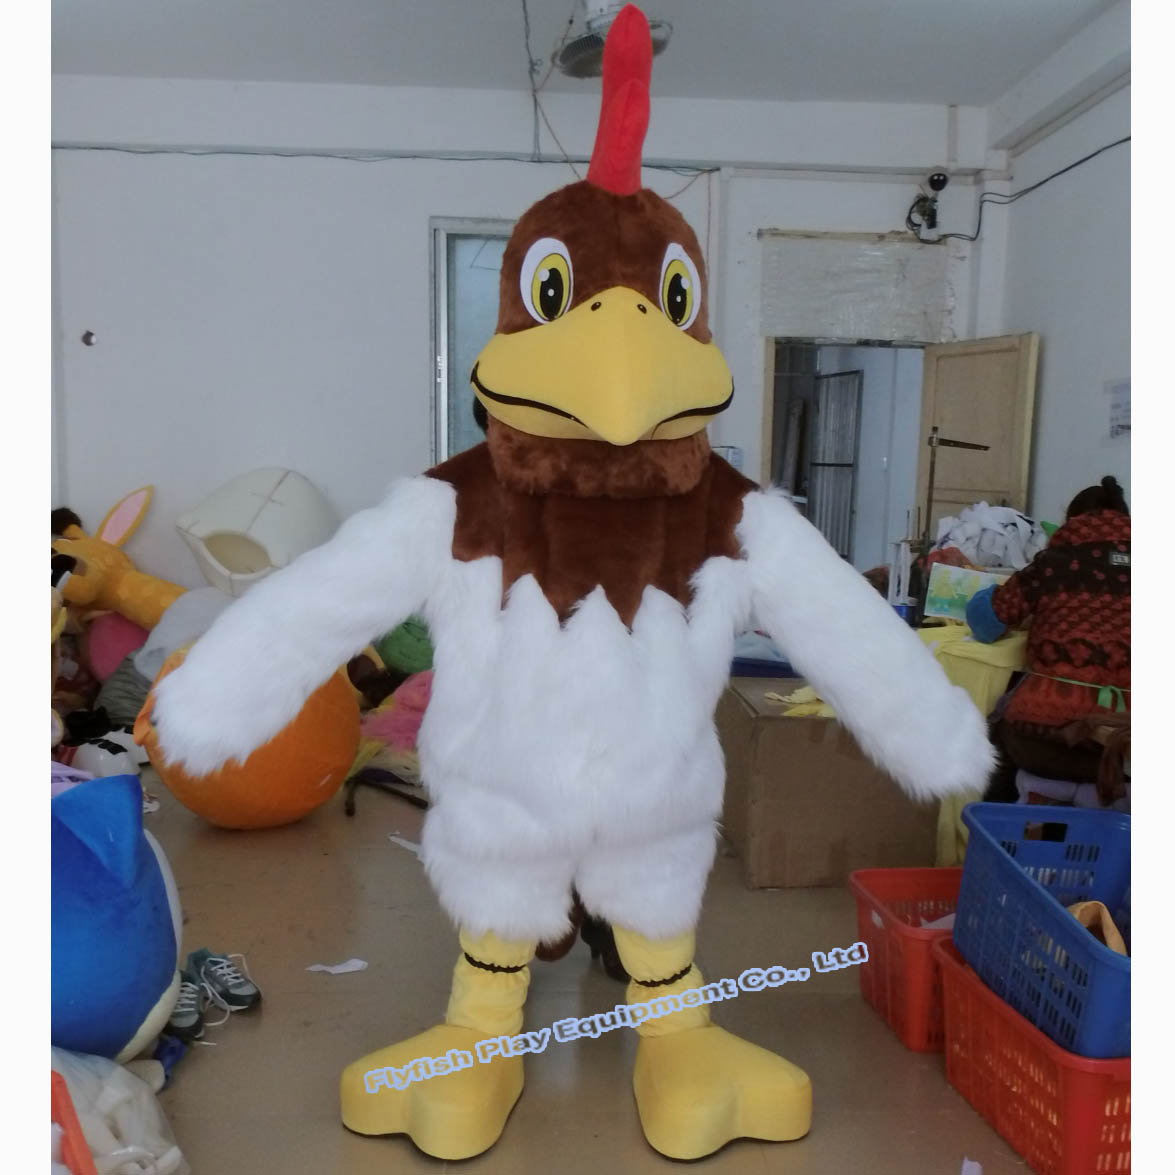 naked adult services mascot